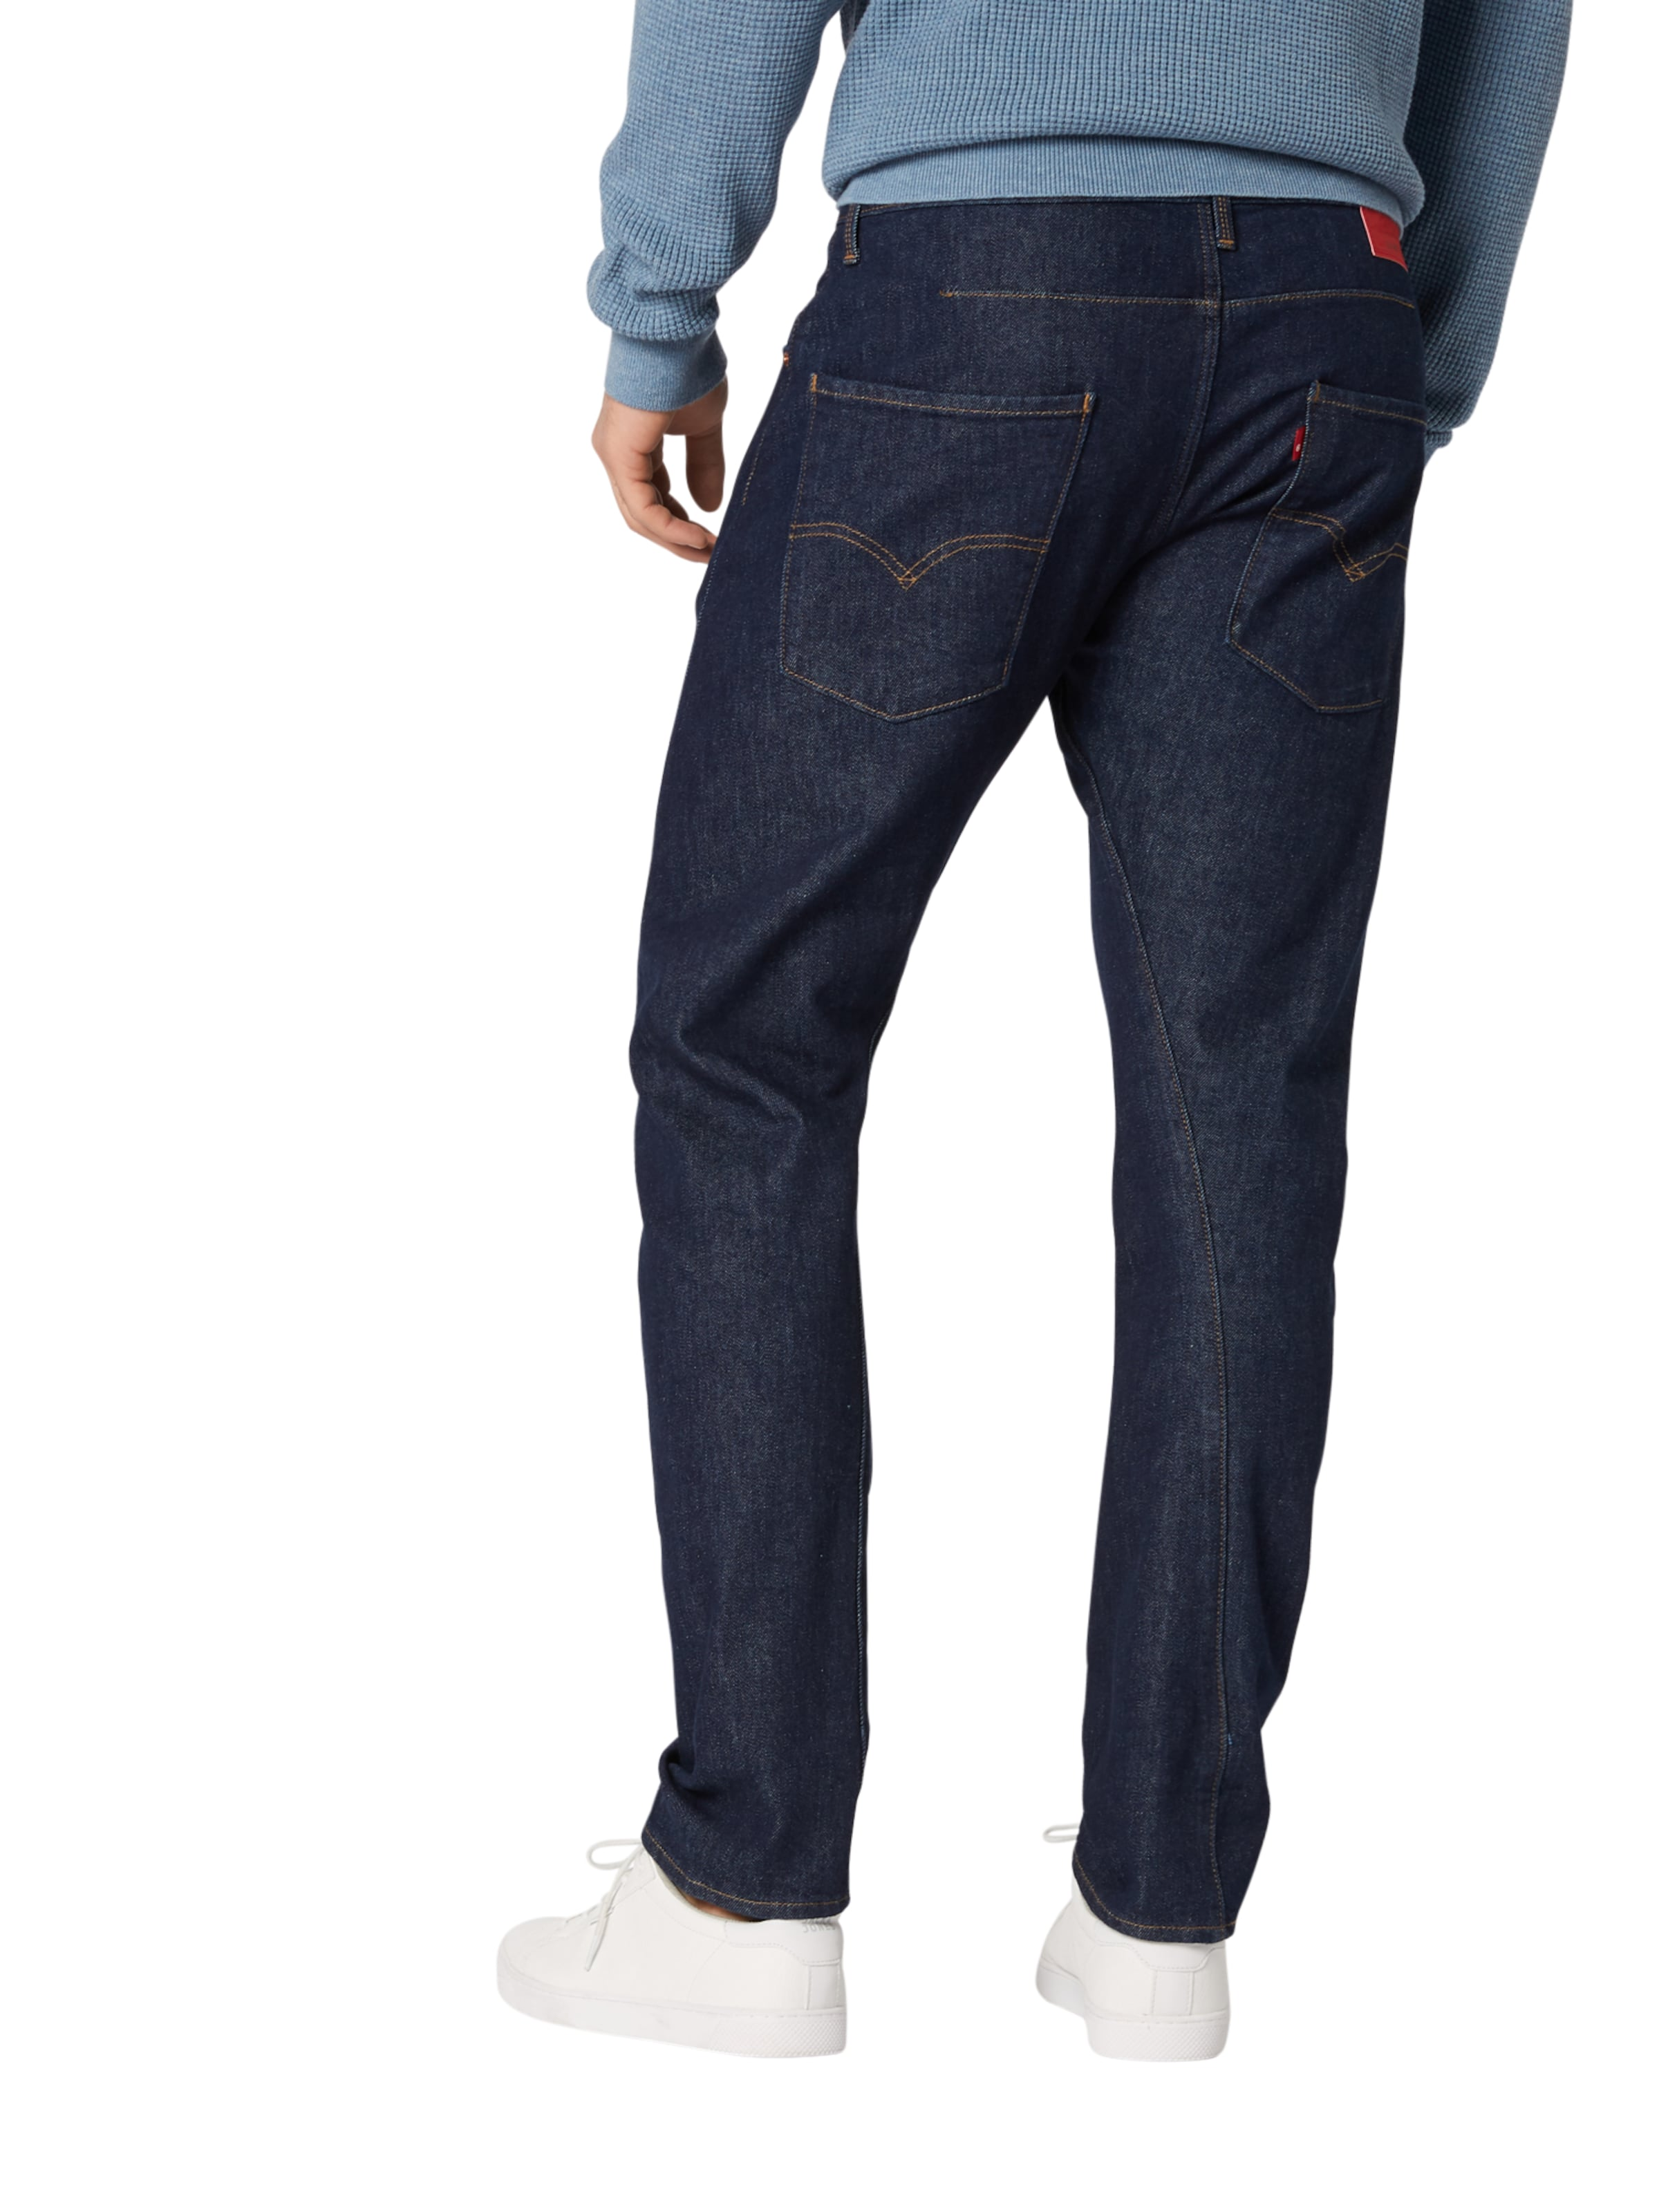 Levi's In 'lej Taper' Blue Jeans 502 Denim Reg q54jLAR3